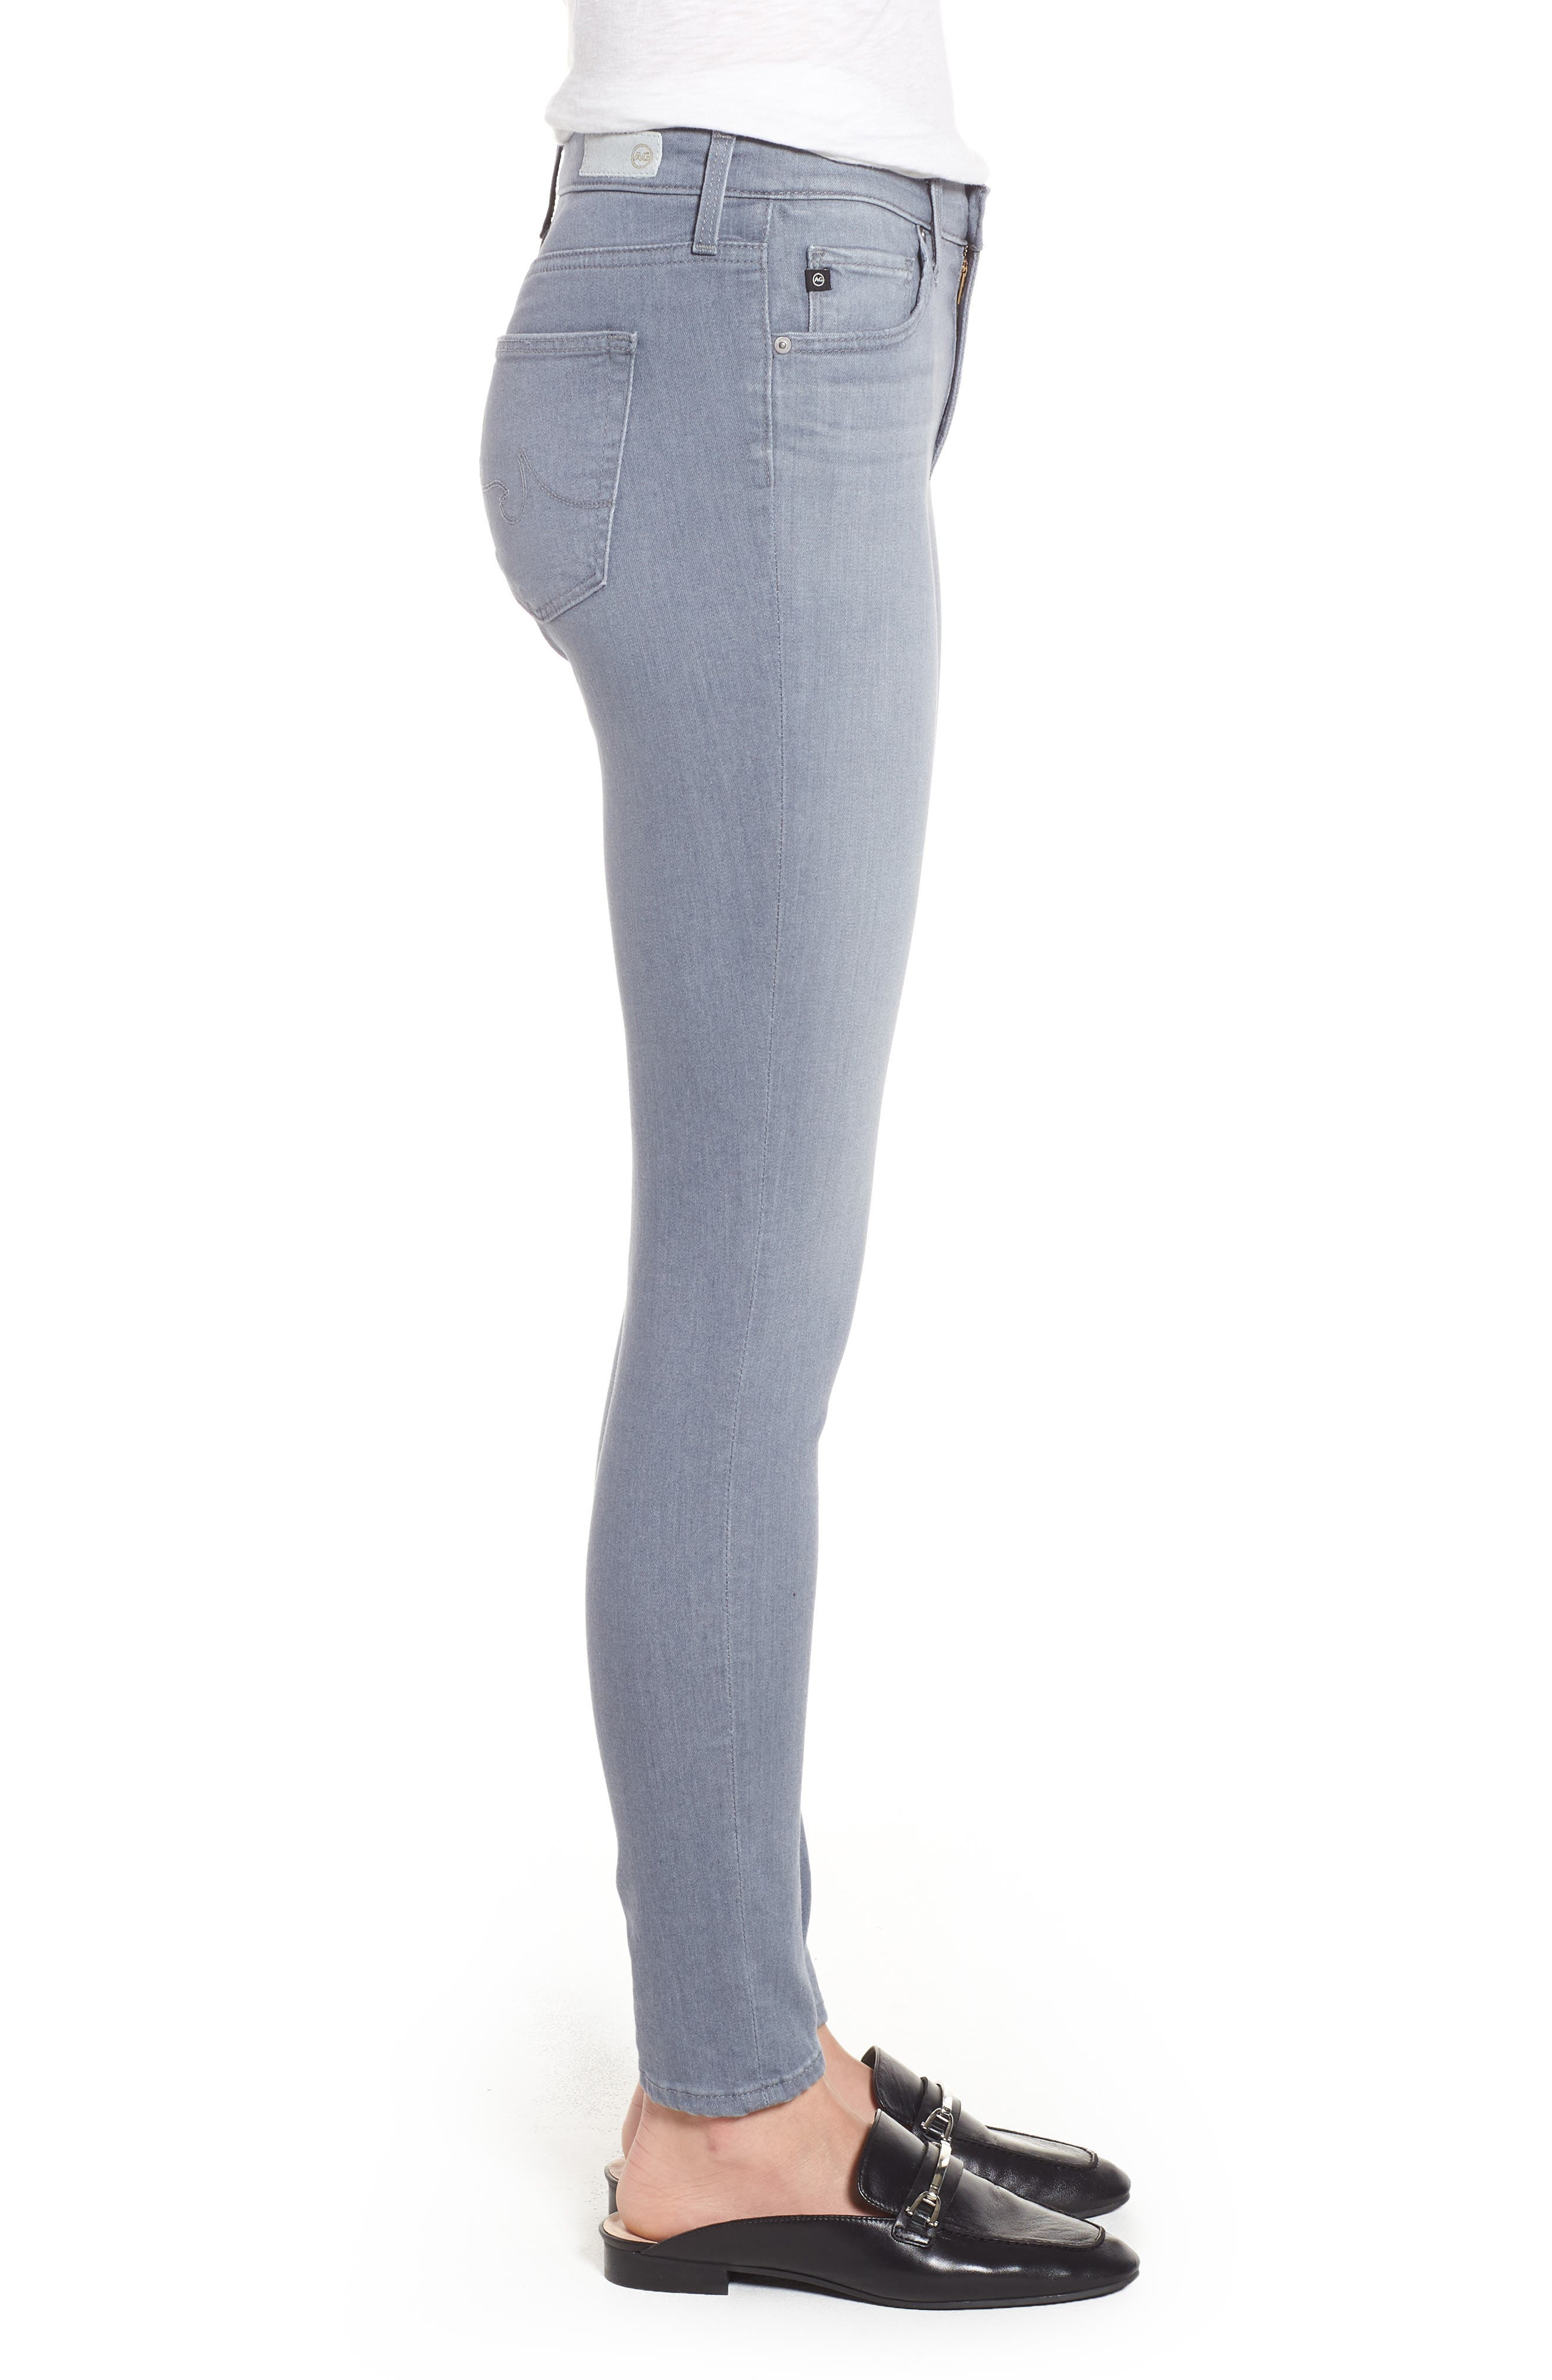 Ankle 'The Legging' Super Skinny Jeans,                             Alternate thumbnail 3, color,                             Valley Smoke